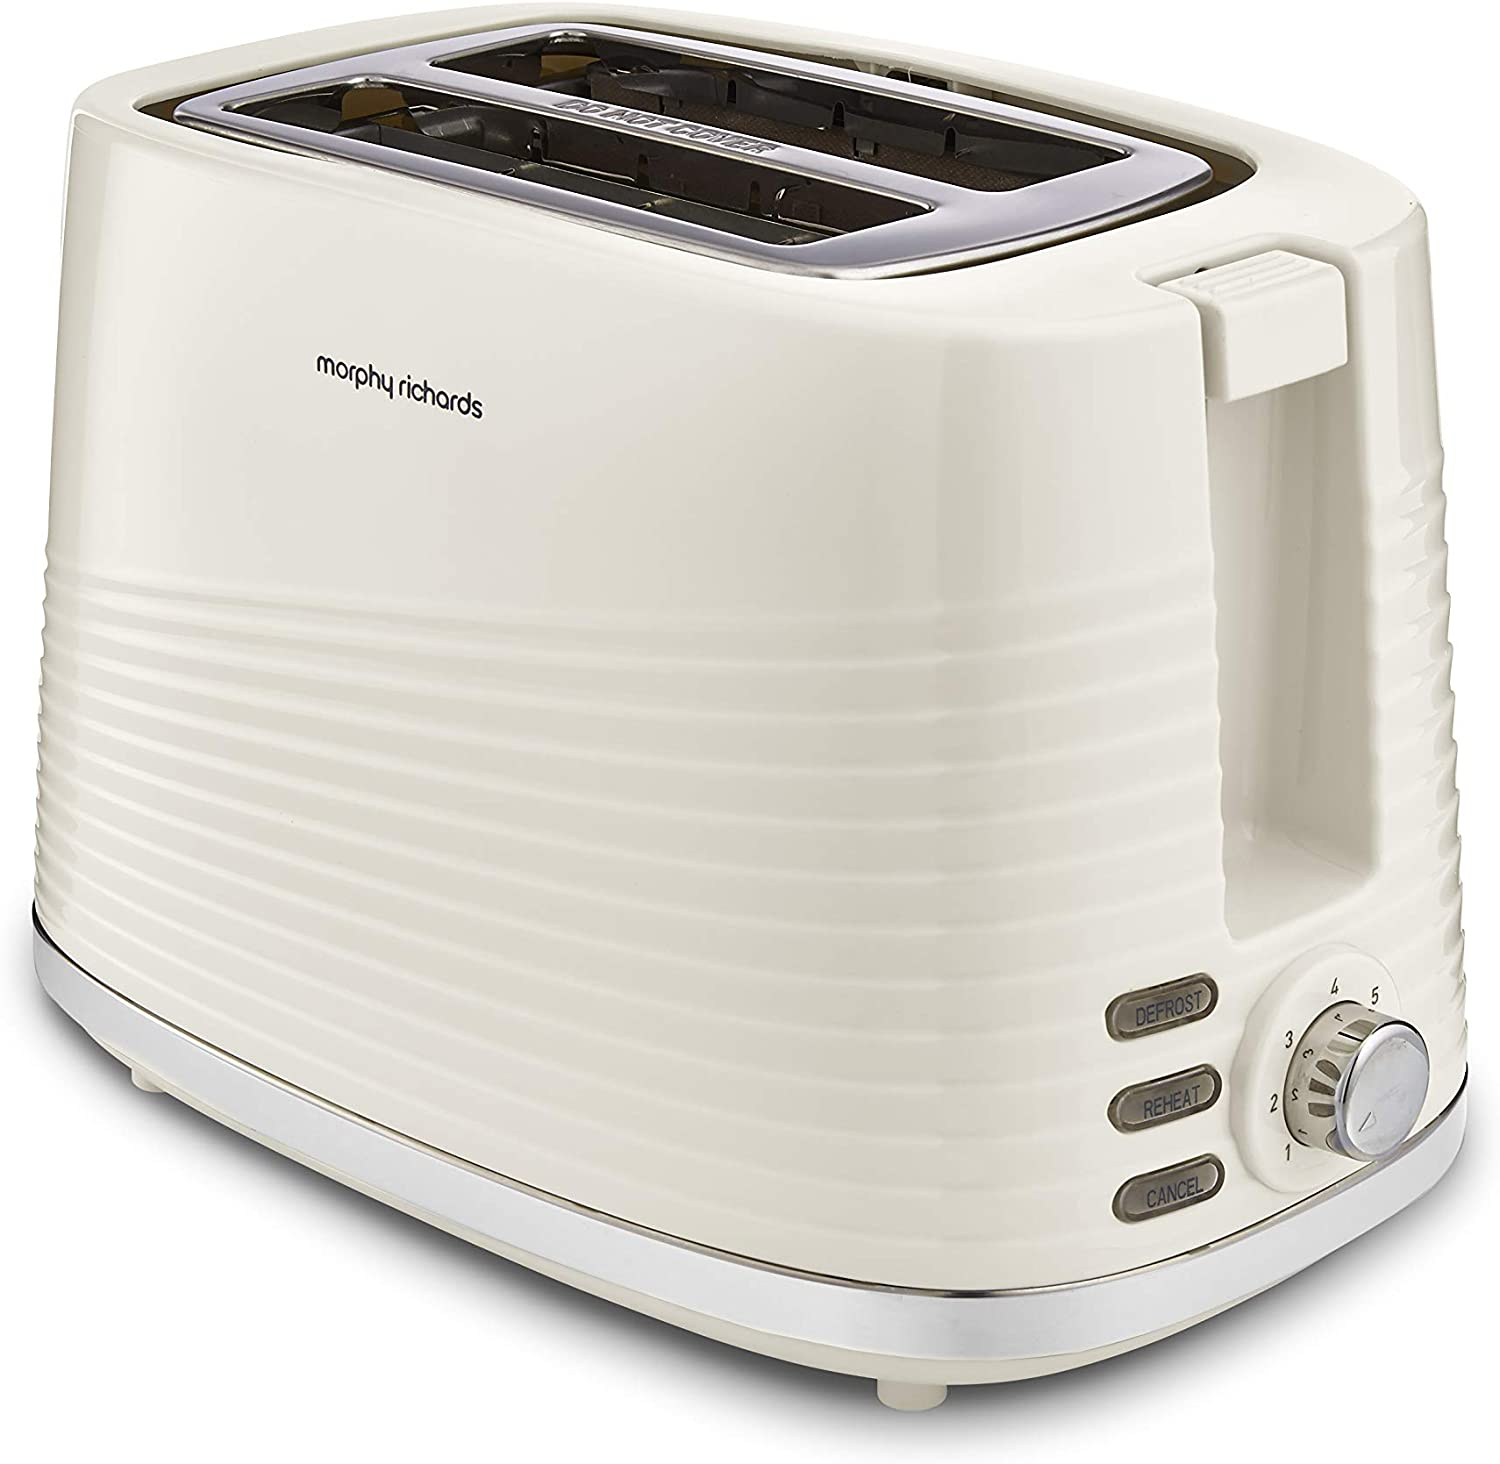 Morphy Richards 220027 Dune 2 Slice Toaster Defrost and Re-Heat Settings, Cream, Defrost Setting, Re-Heat Setting, Variable Browning Control, Removable Crumb Tray, Cord storage, 850 Watts